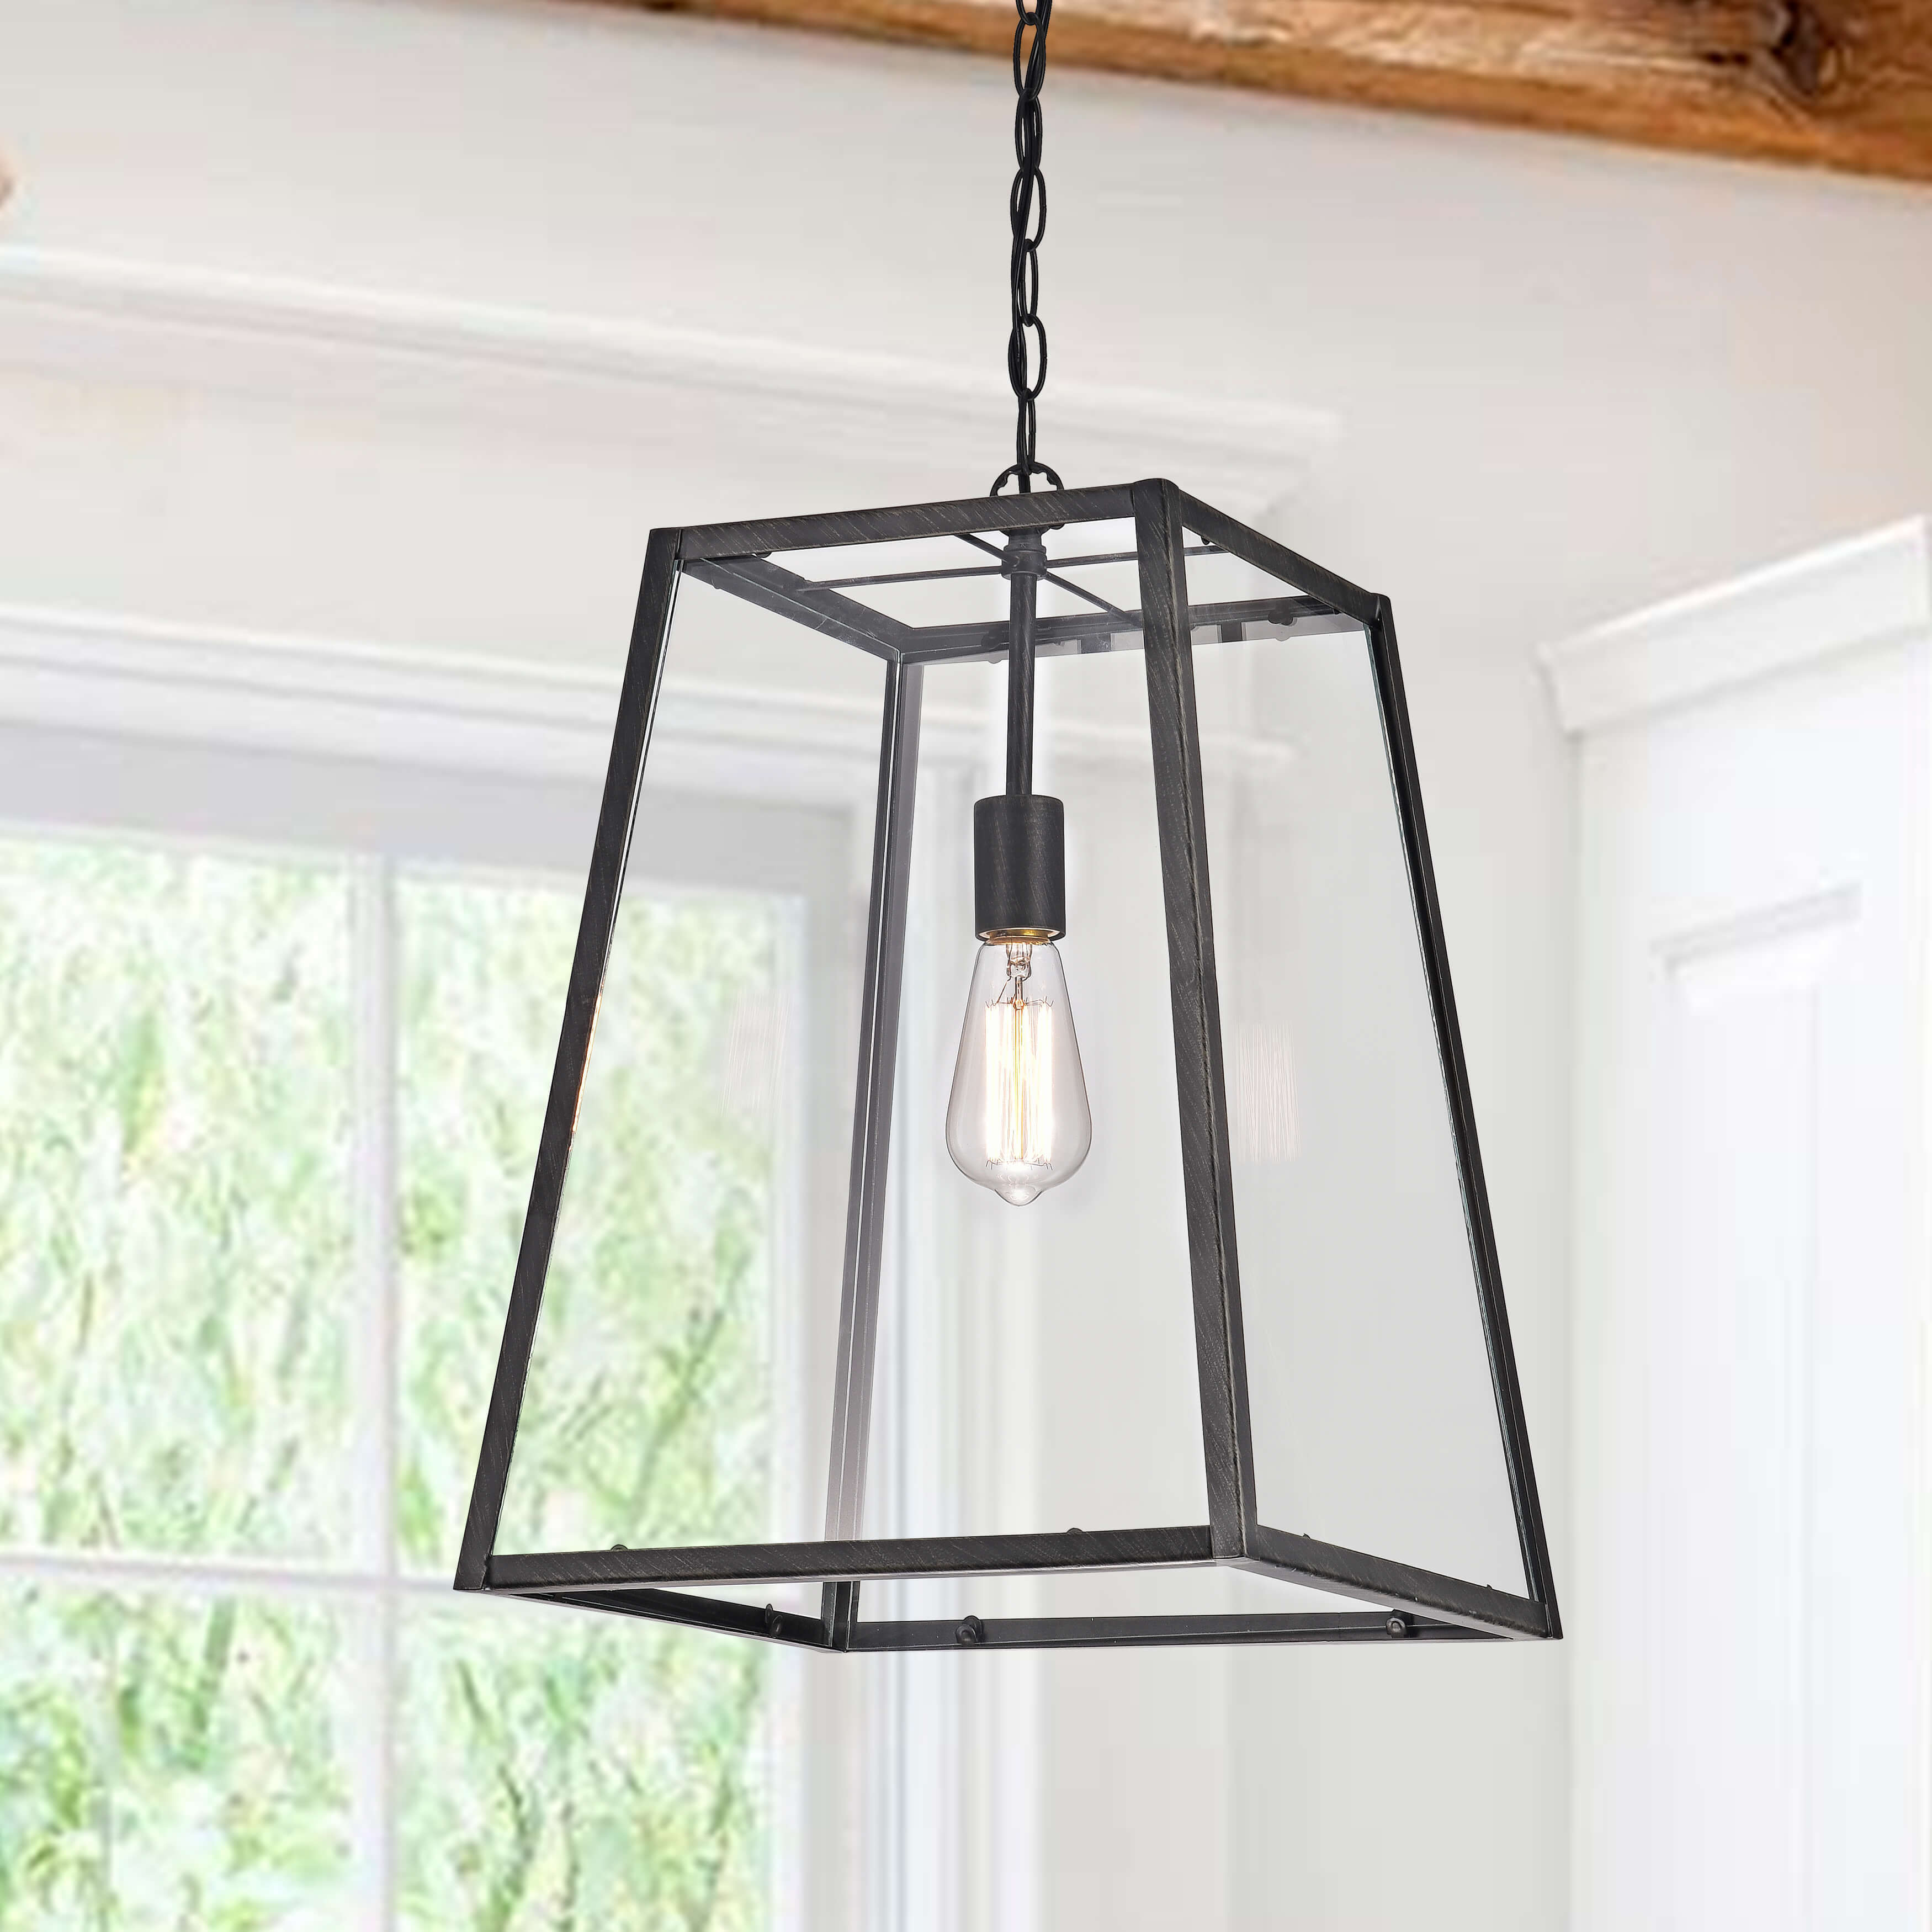 Buy LED Ceiling Lights - Clearance & Liquidation Online at Overstock ...